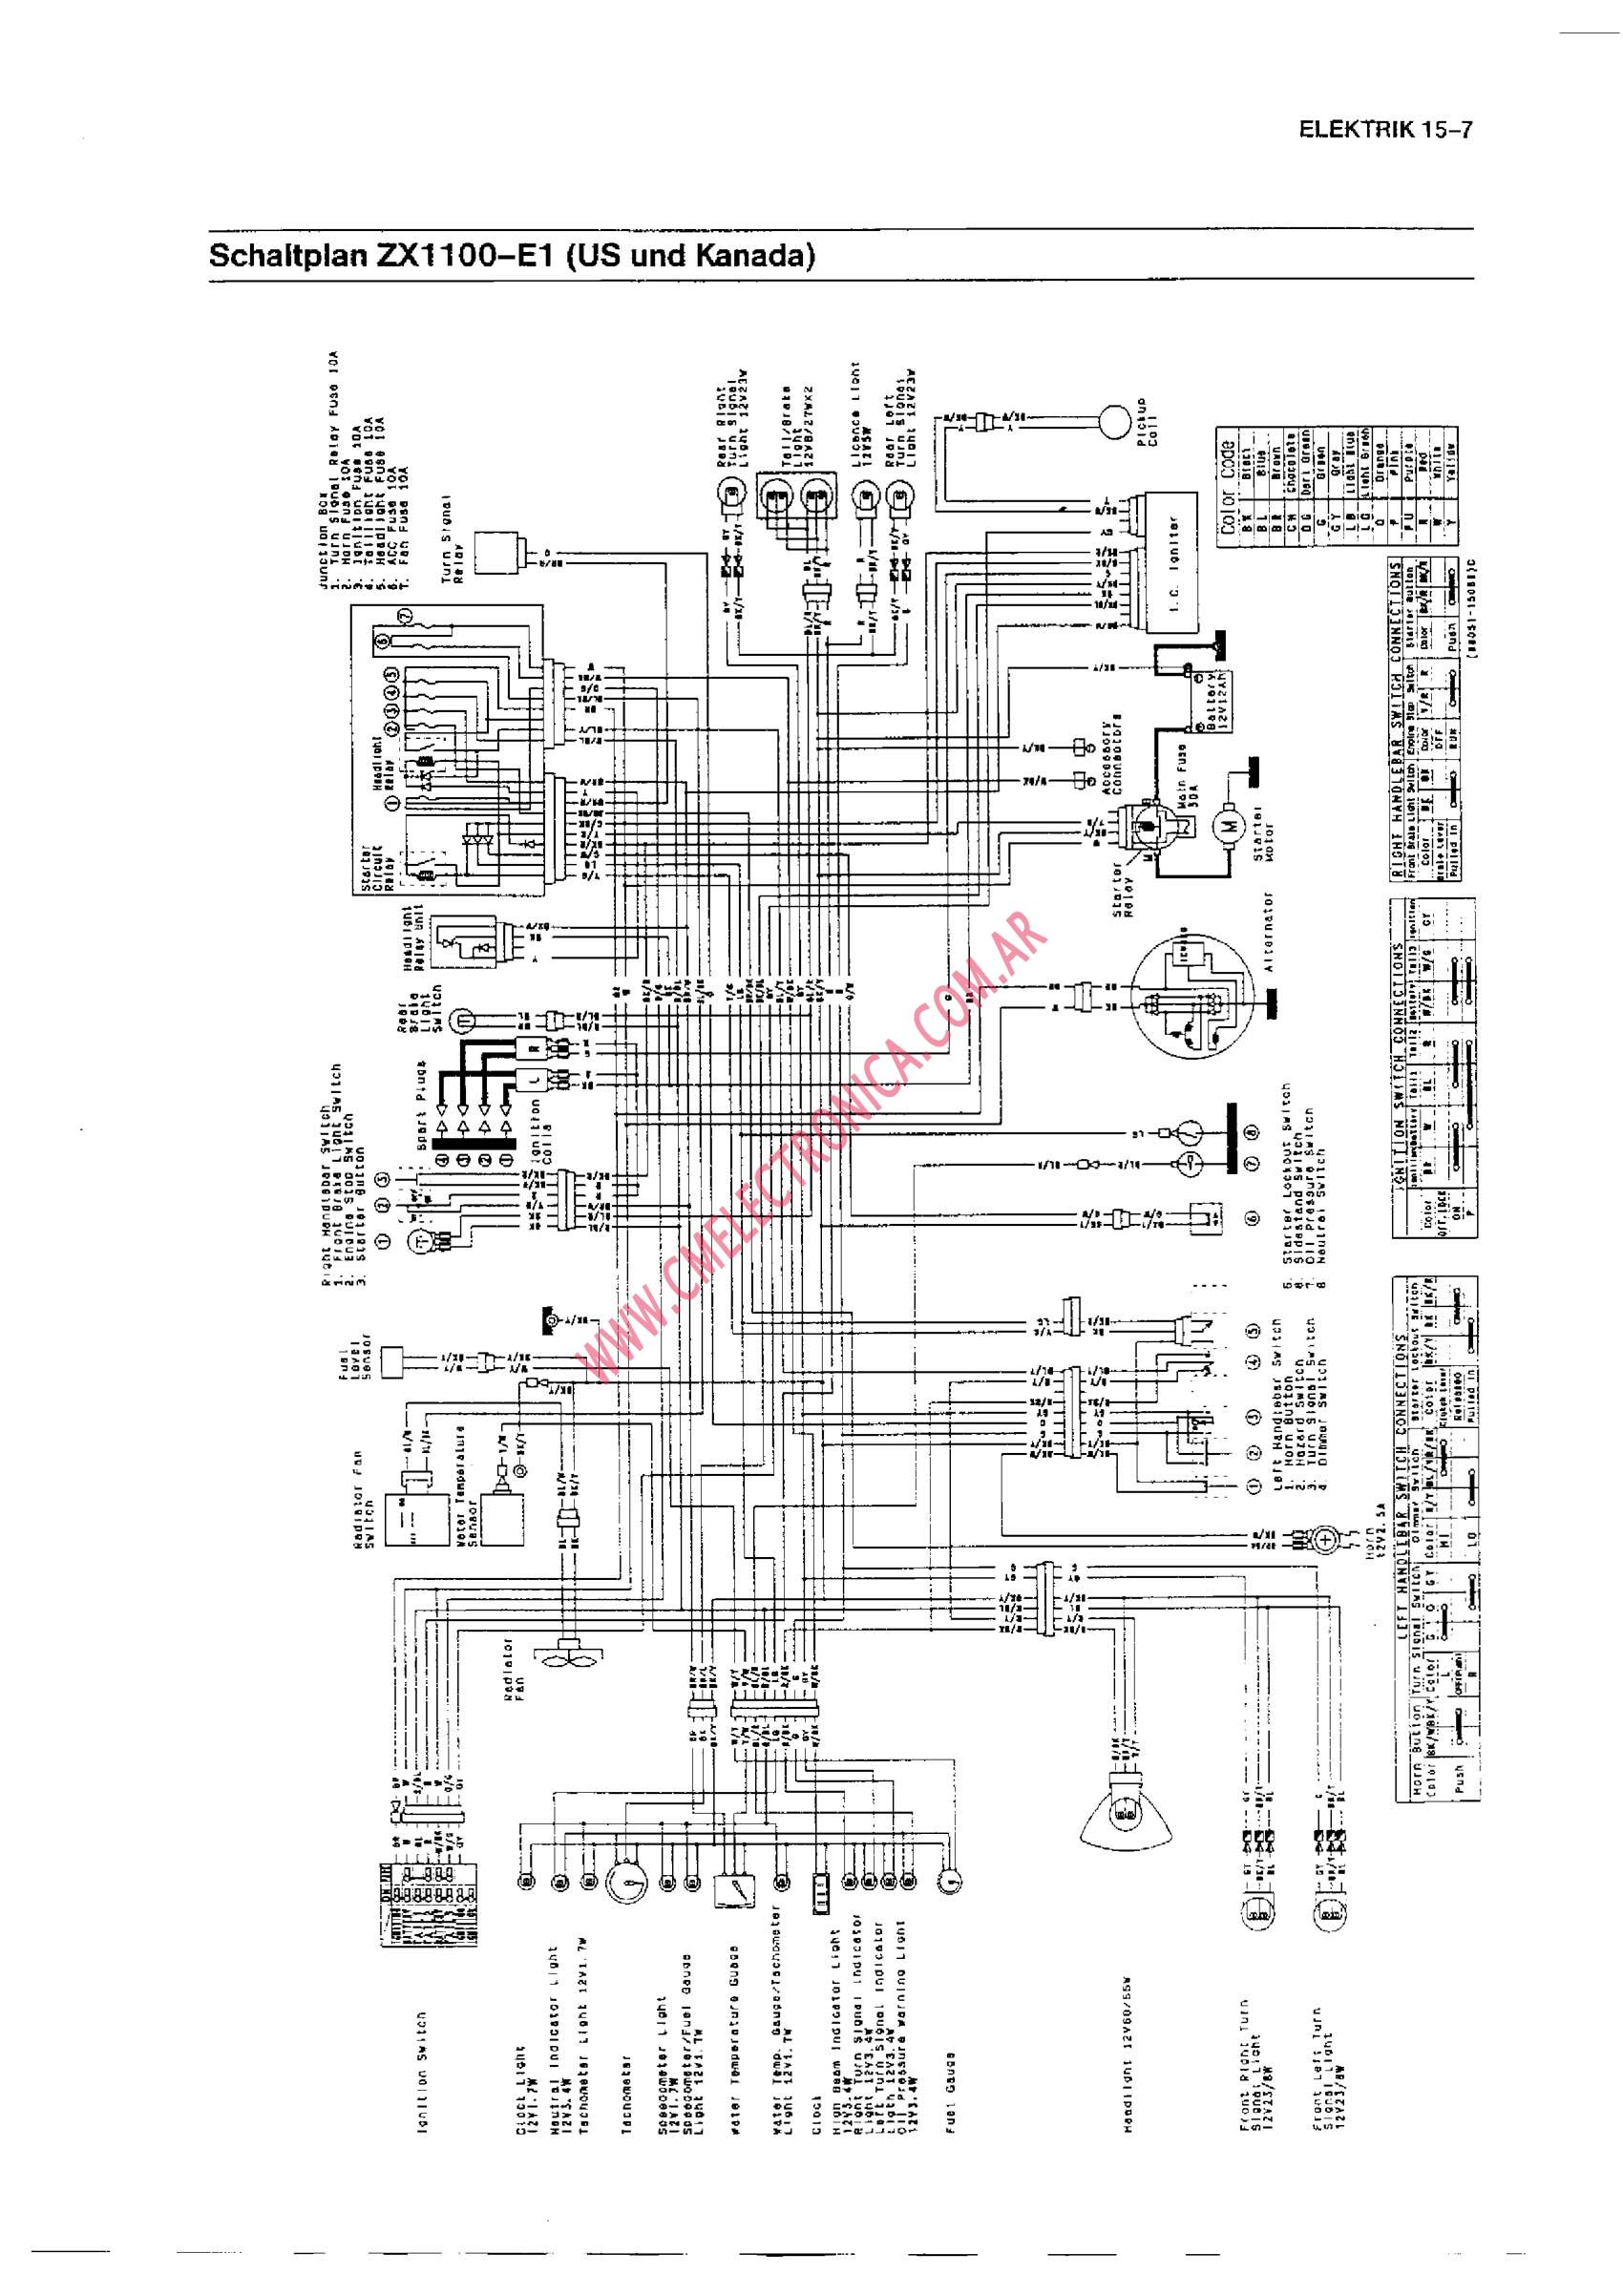 Pin Diagram Of Kawasaki Atv Parts Klt250 A1 Crankcase